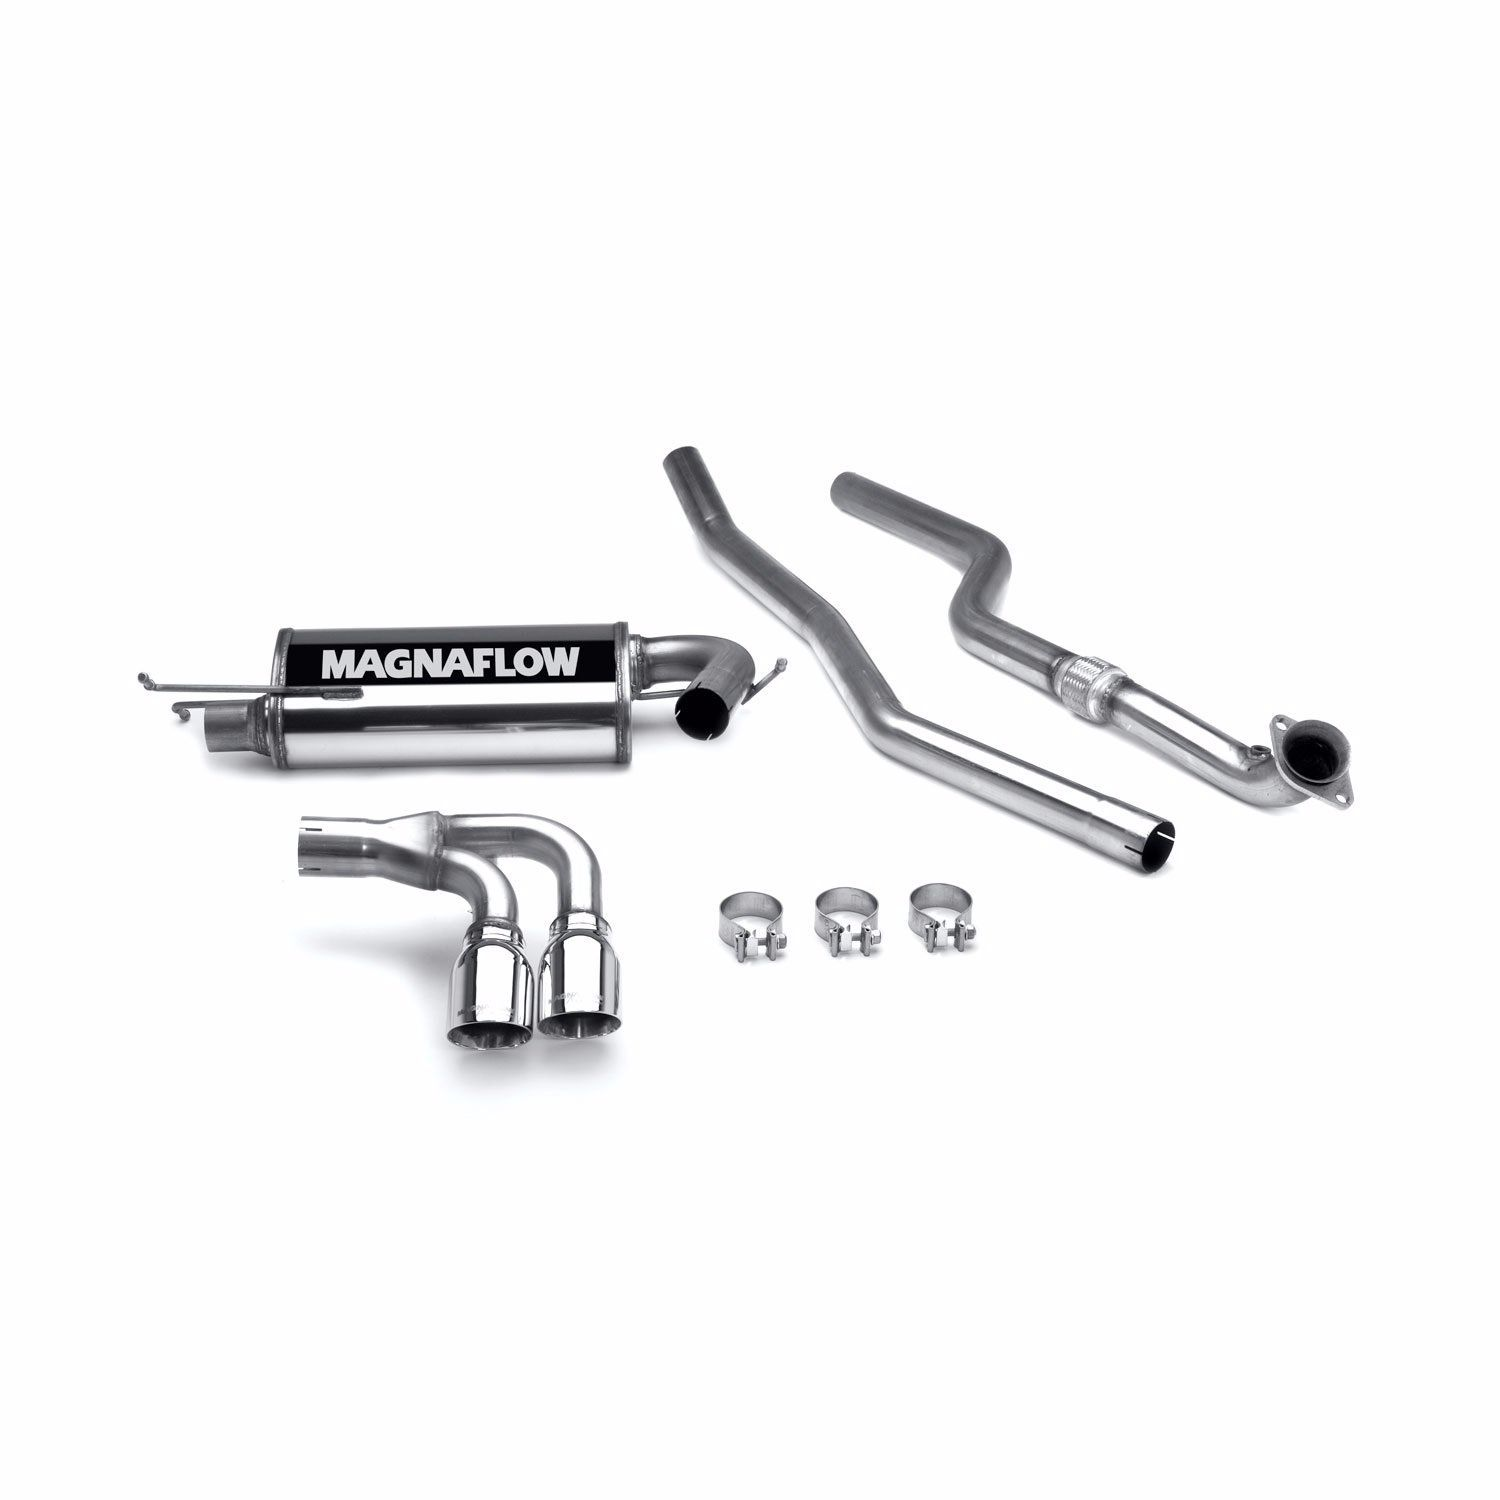 Magnaflow Street Series Cat Back Exhaust